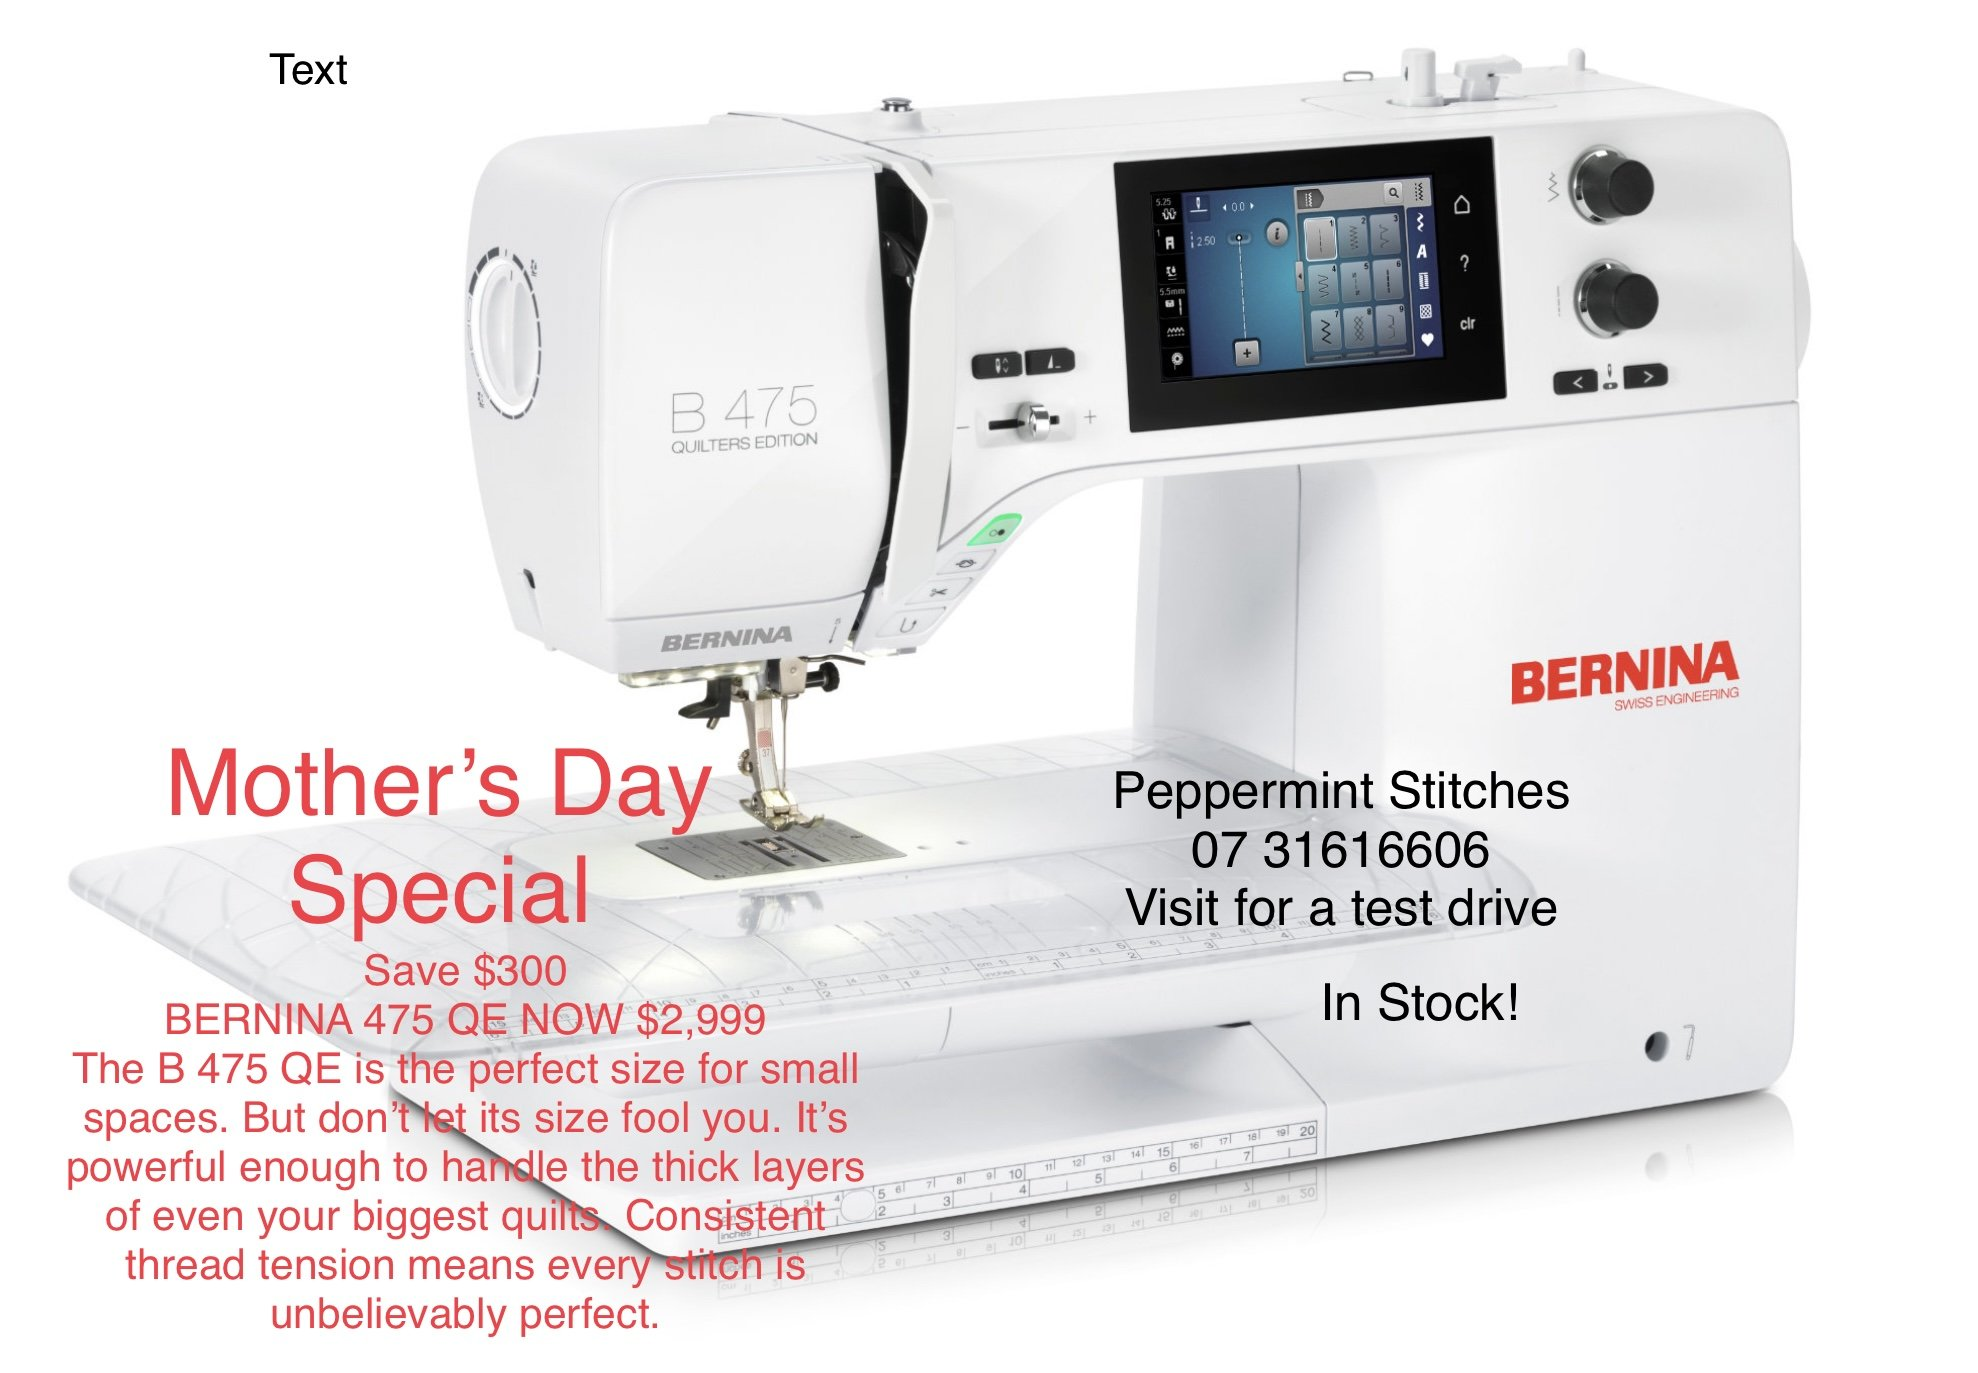 BERNINA 475QE - Highly Sought After, Great Sew Everything/Anything Machine with Powerful Motor, Good for all types of Sewing, Patchwork, Bag Making, Mending,  has many uses. 1 IN STOCk!